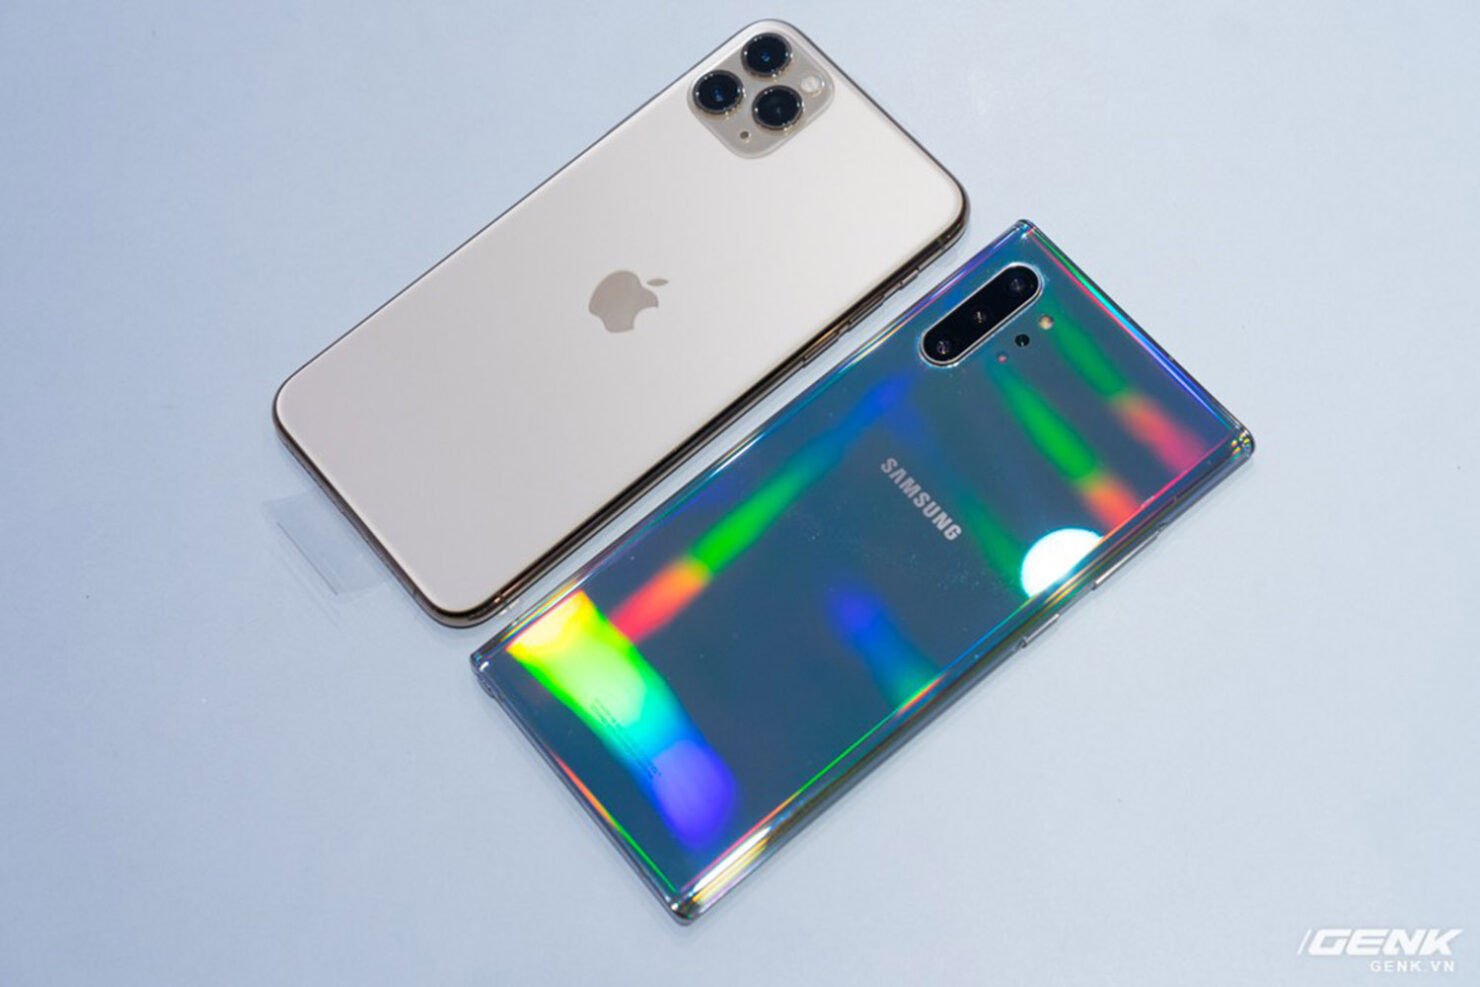 iPhone 11 Pro Max Unboxing Gallery Surfaces, Showing Included Accessories & More